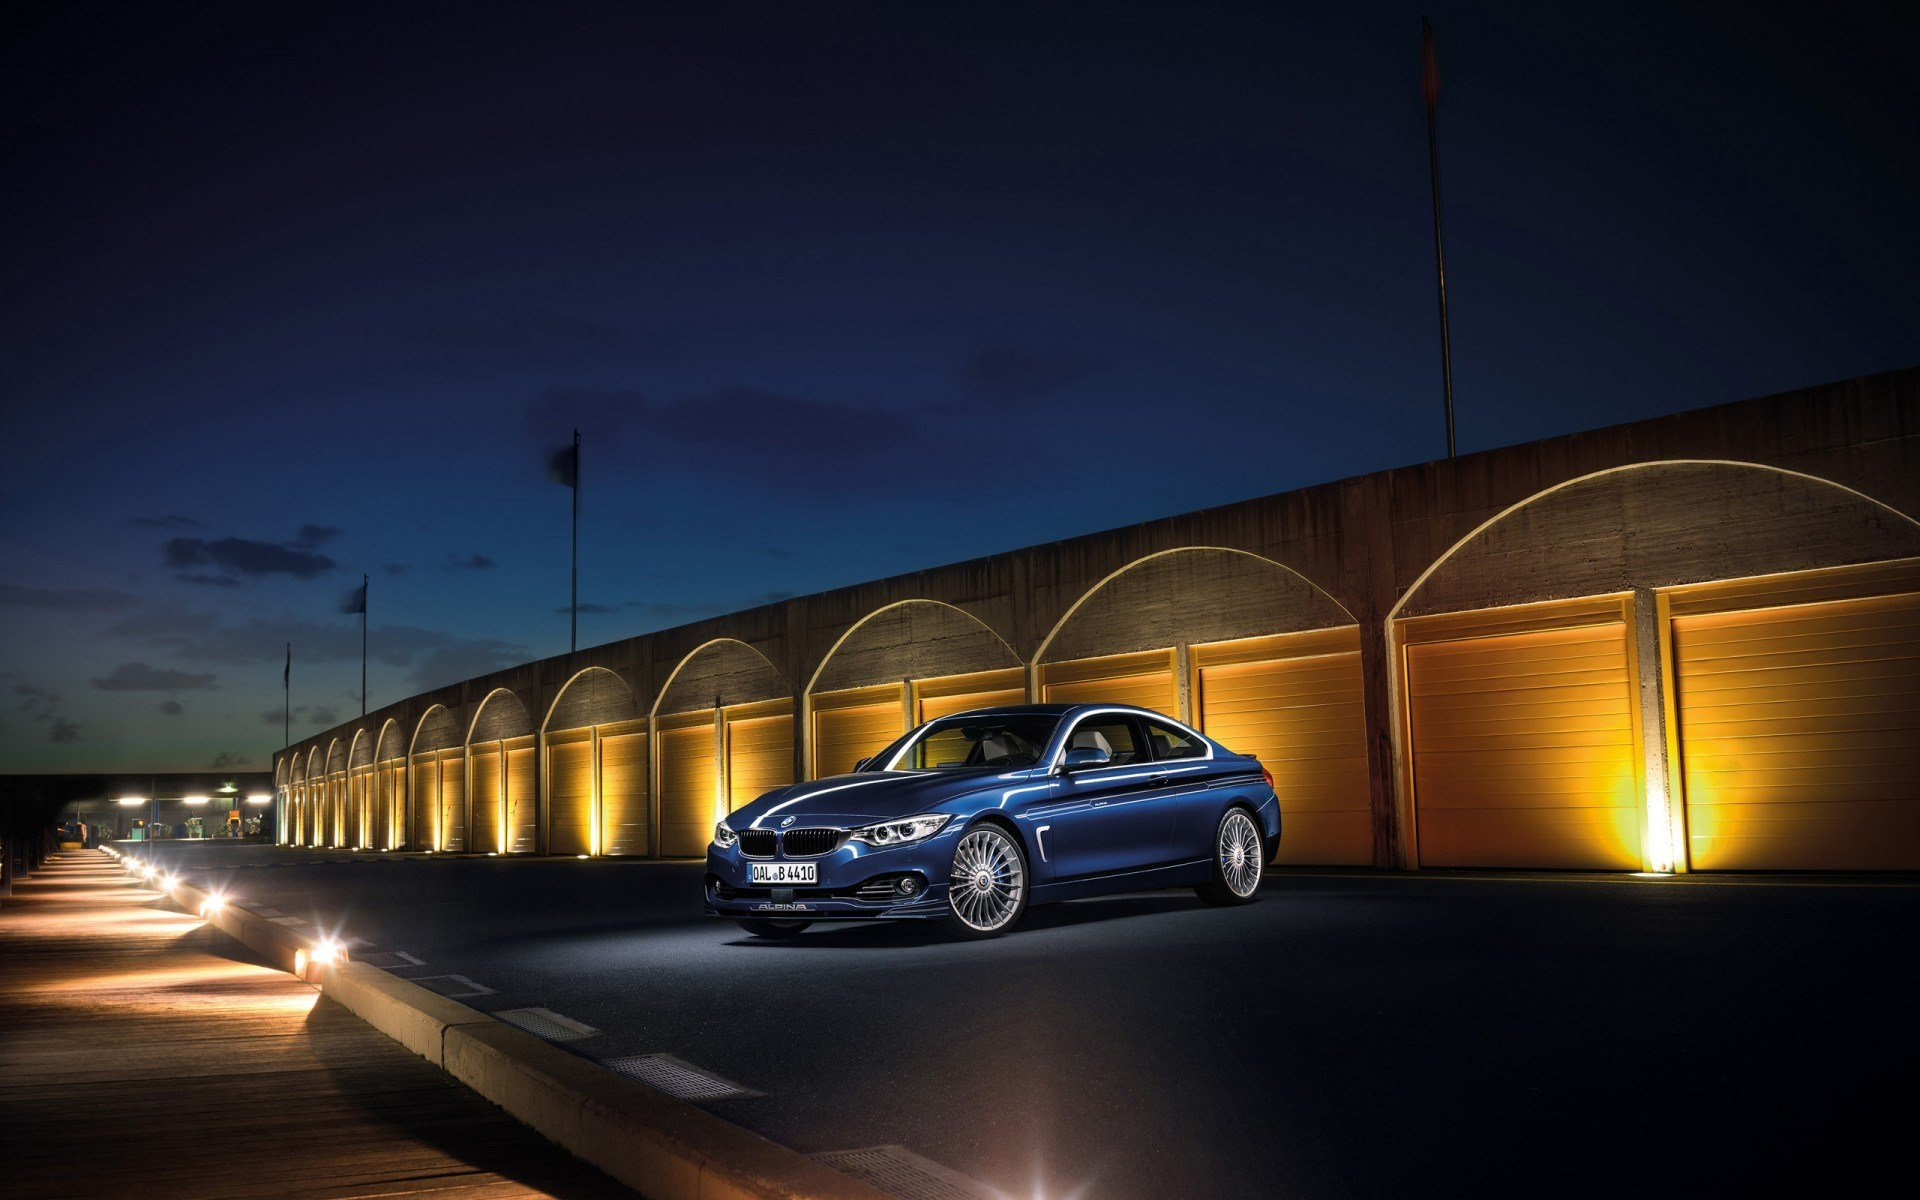 Latest 2014 Bmw Alpina B4 Bi Turbo Coupe Wallpaper Hd Car Free Download